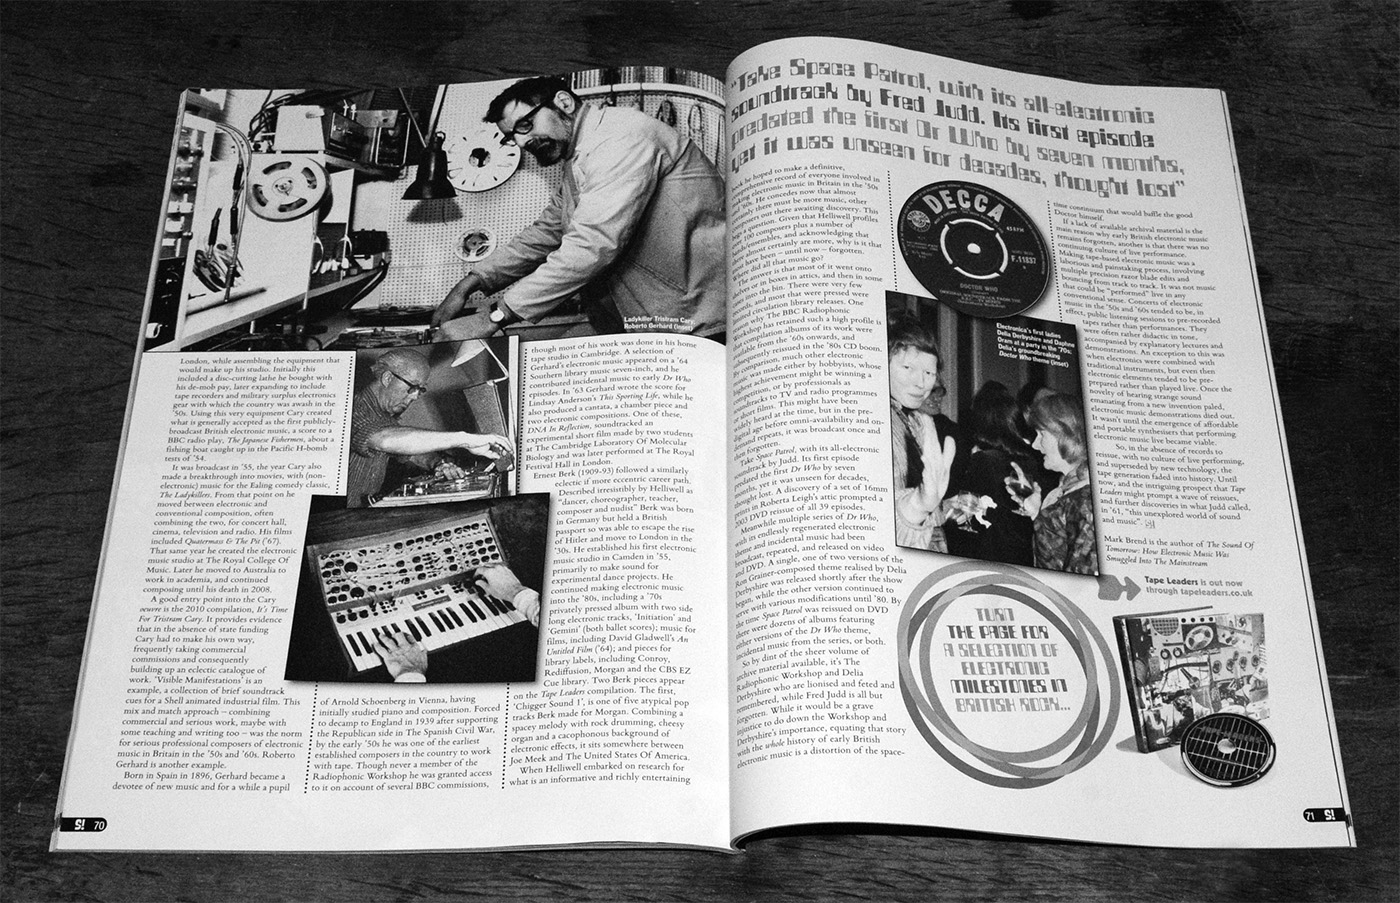 Shindig-issues 59 and 32-Broadcast-Psychomania-Delia Derbyshire-Tape Leader-A Year In The Country-4